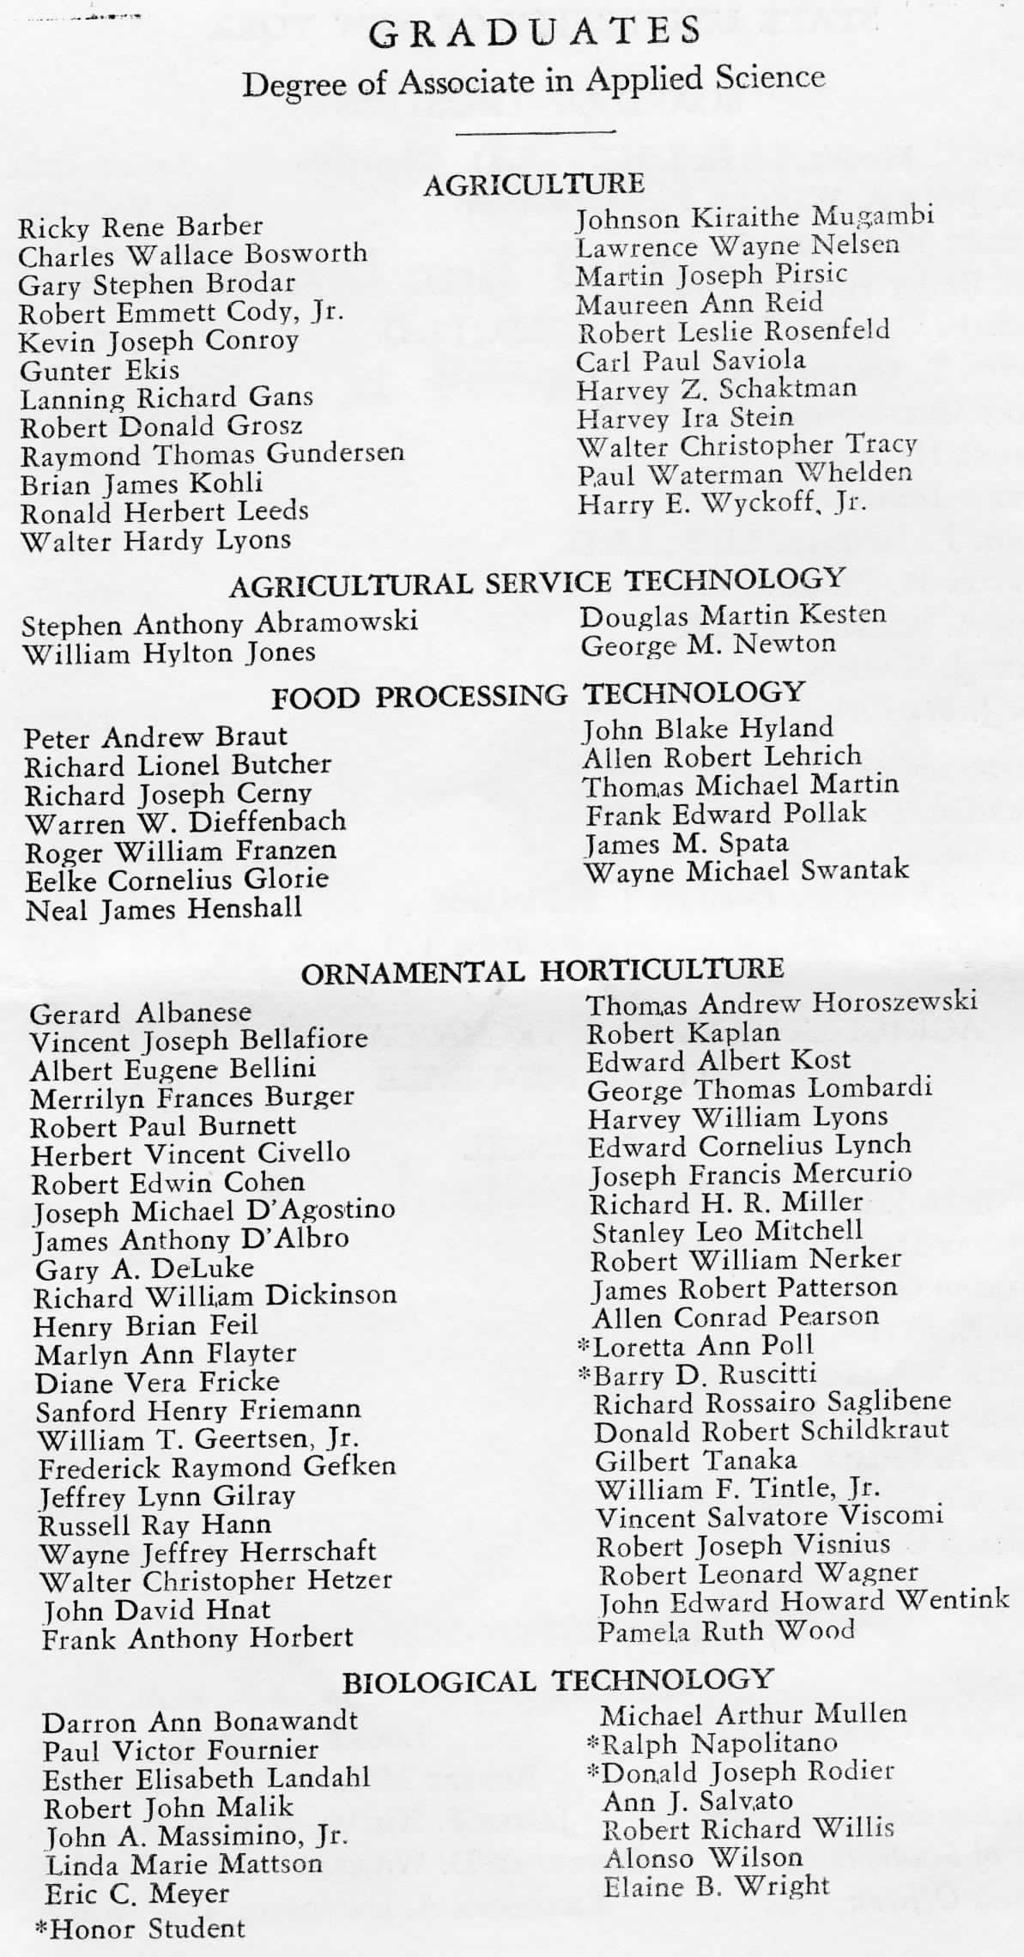 GRADUATES Degree of Associate in Applied Science Ricky Rene Barber Charles Wallace Bosworth Gary Stephen Brodar Robert Emmett Cody, Jr.